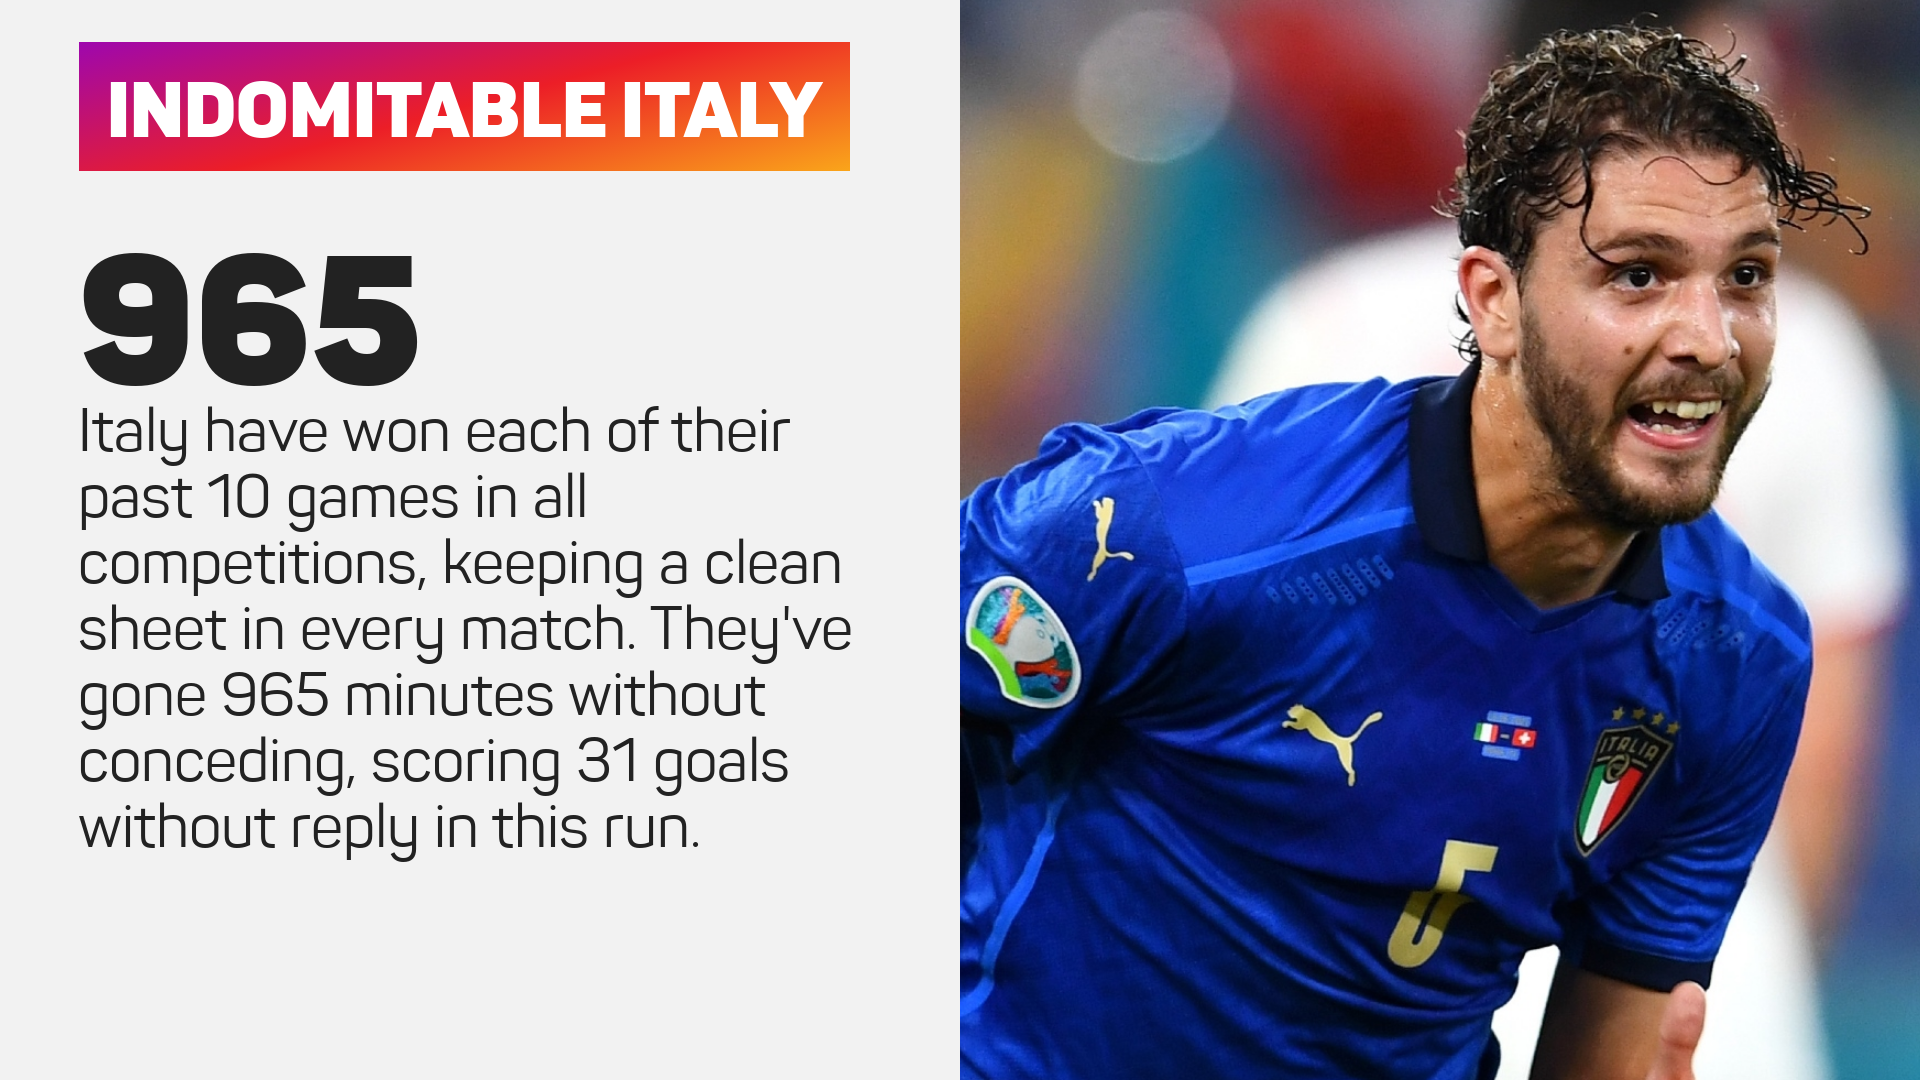 Italy run without conceding